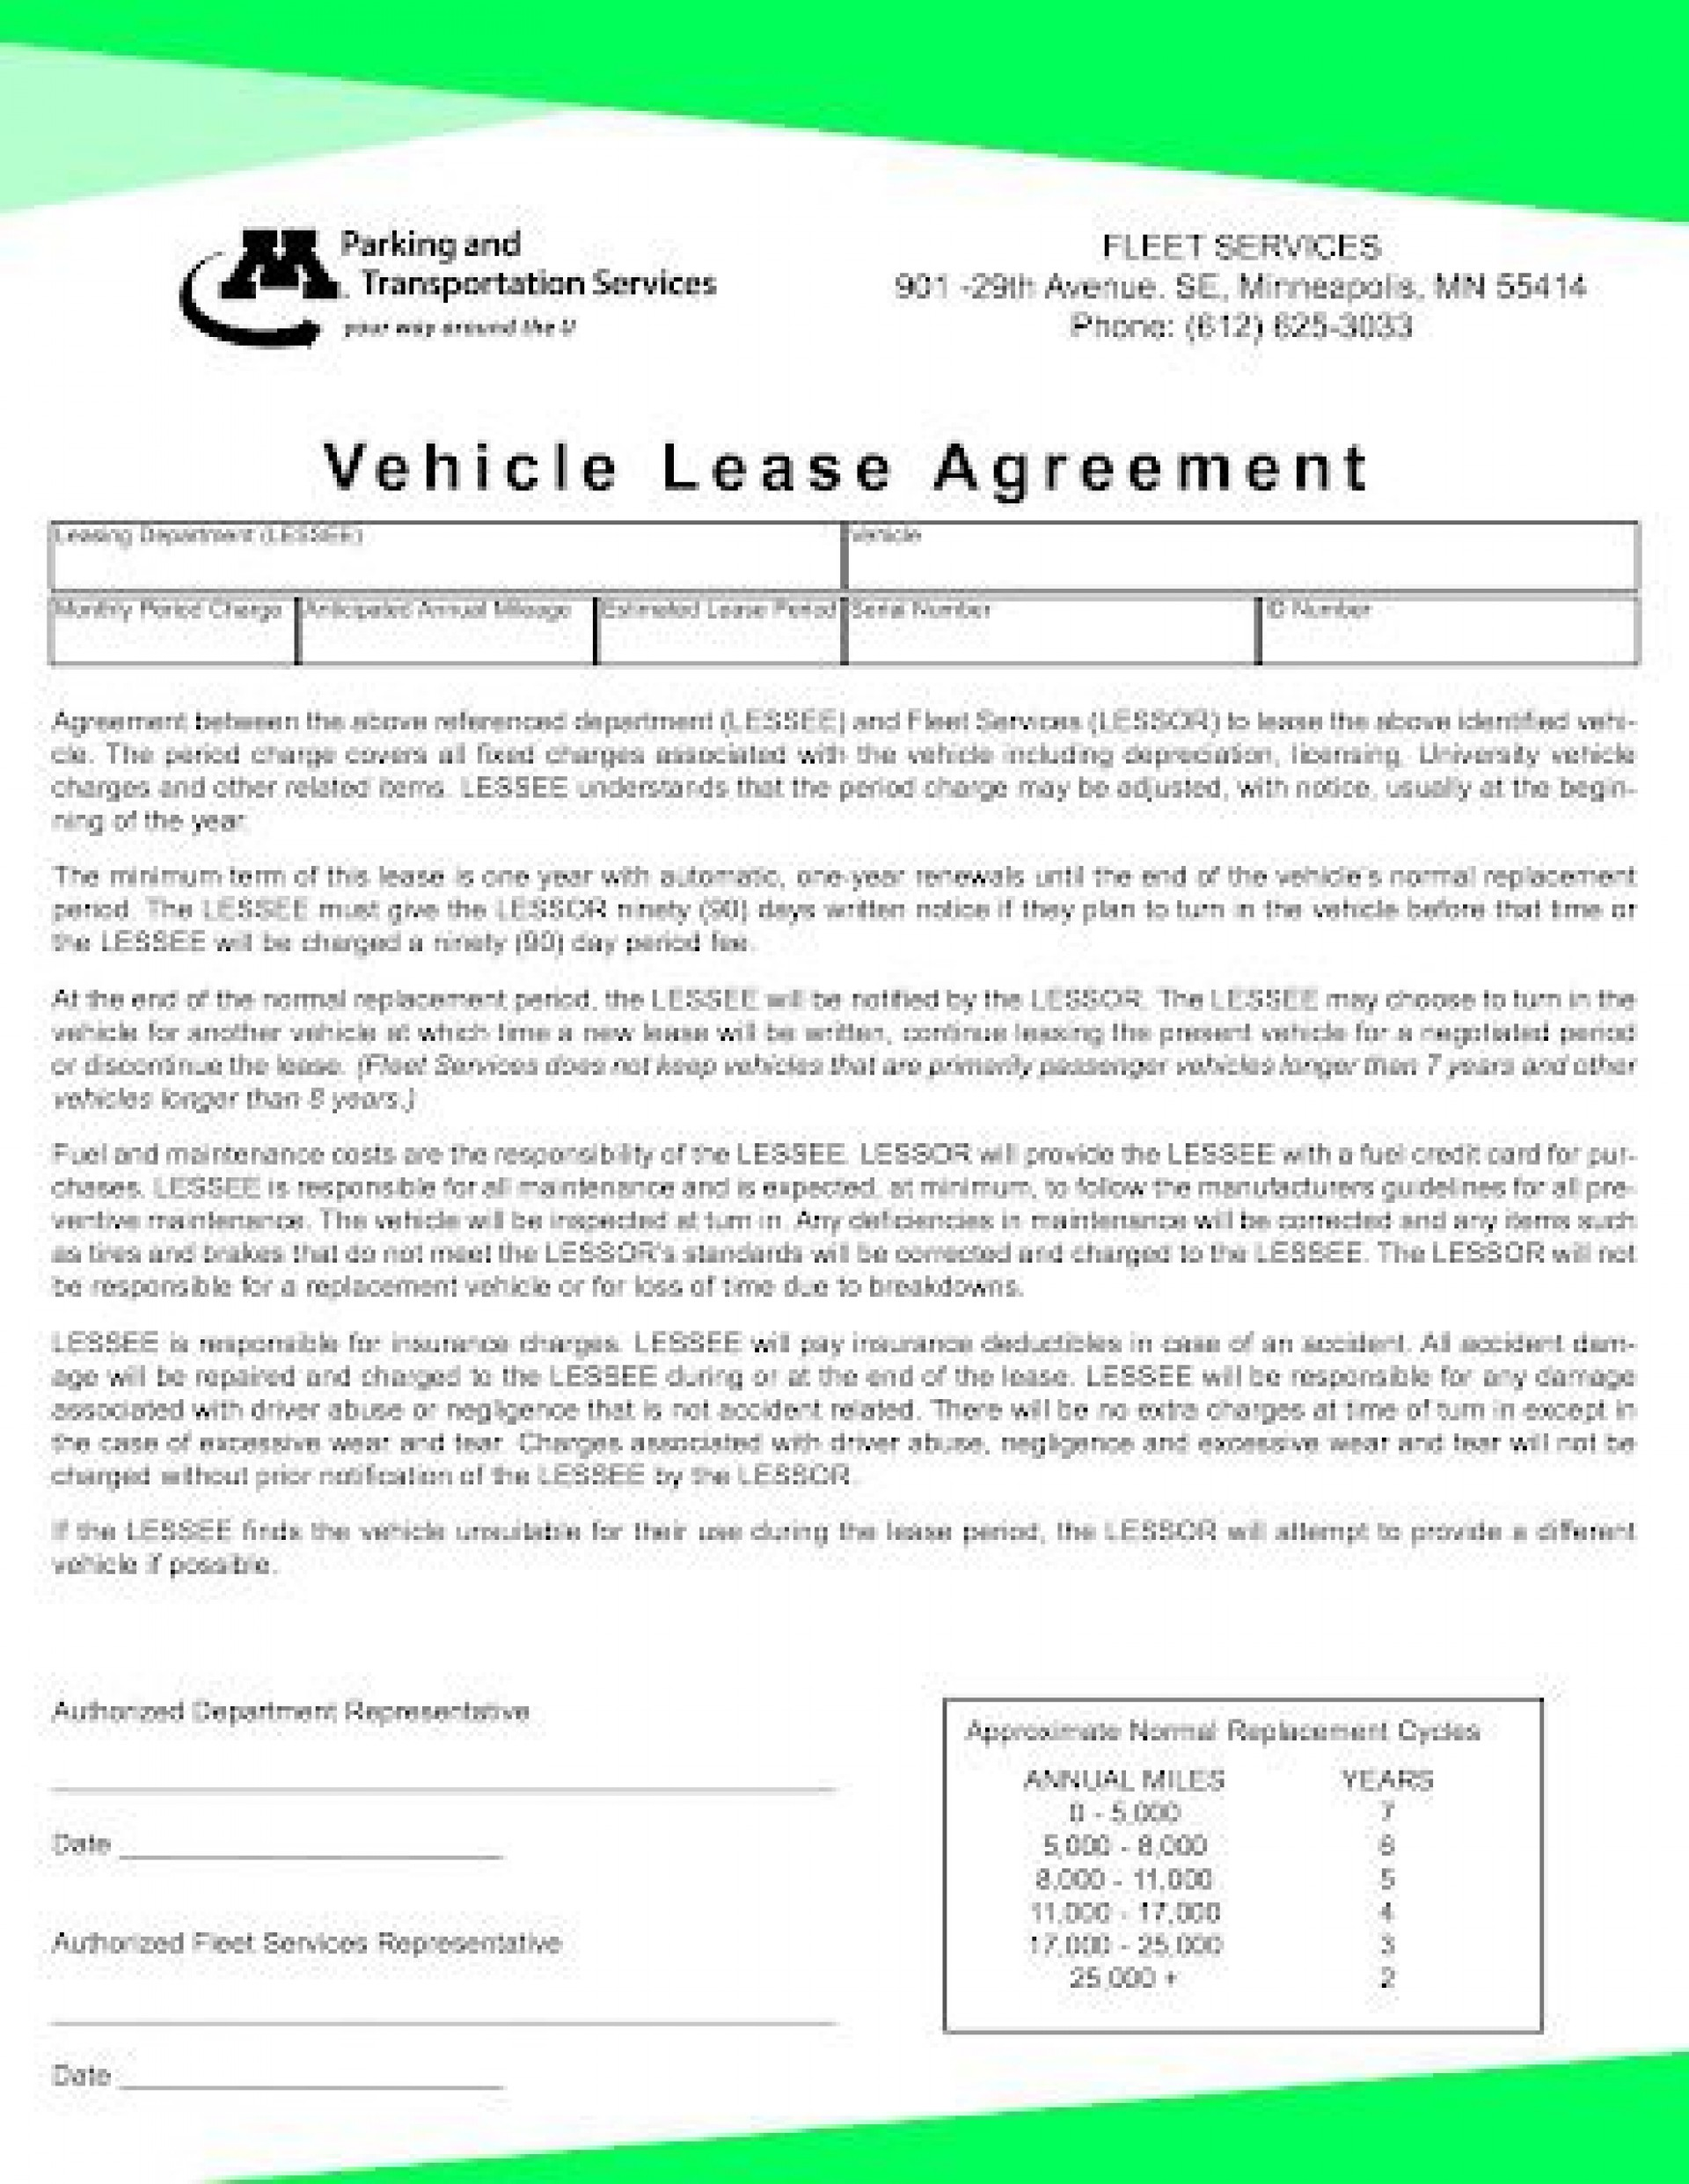 010 Frightening Car Lease Agreement Template High Resolution  Vehicle Ontario Rental Singapore Leasing1920